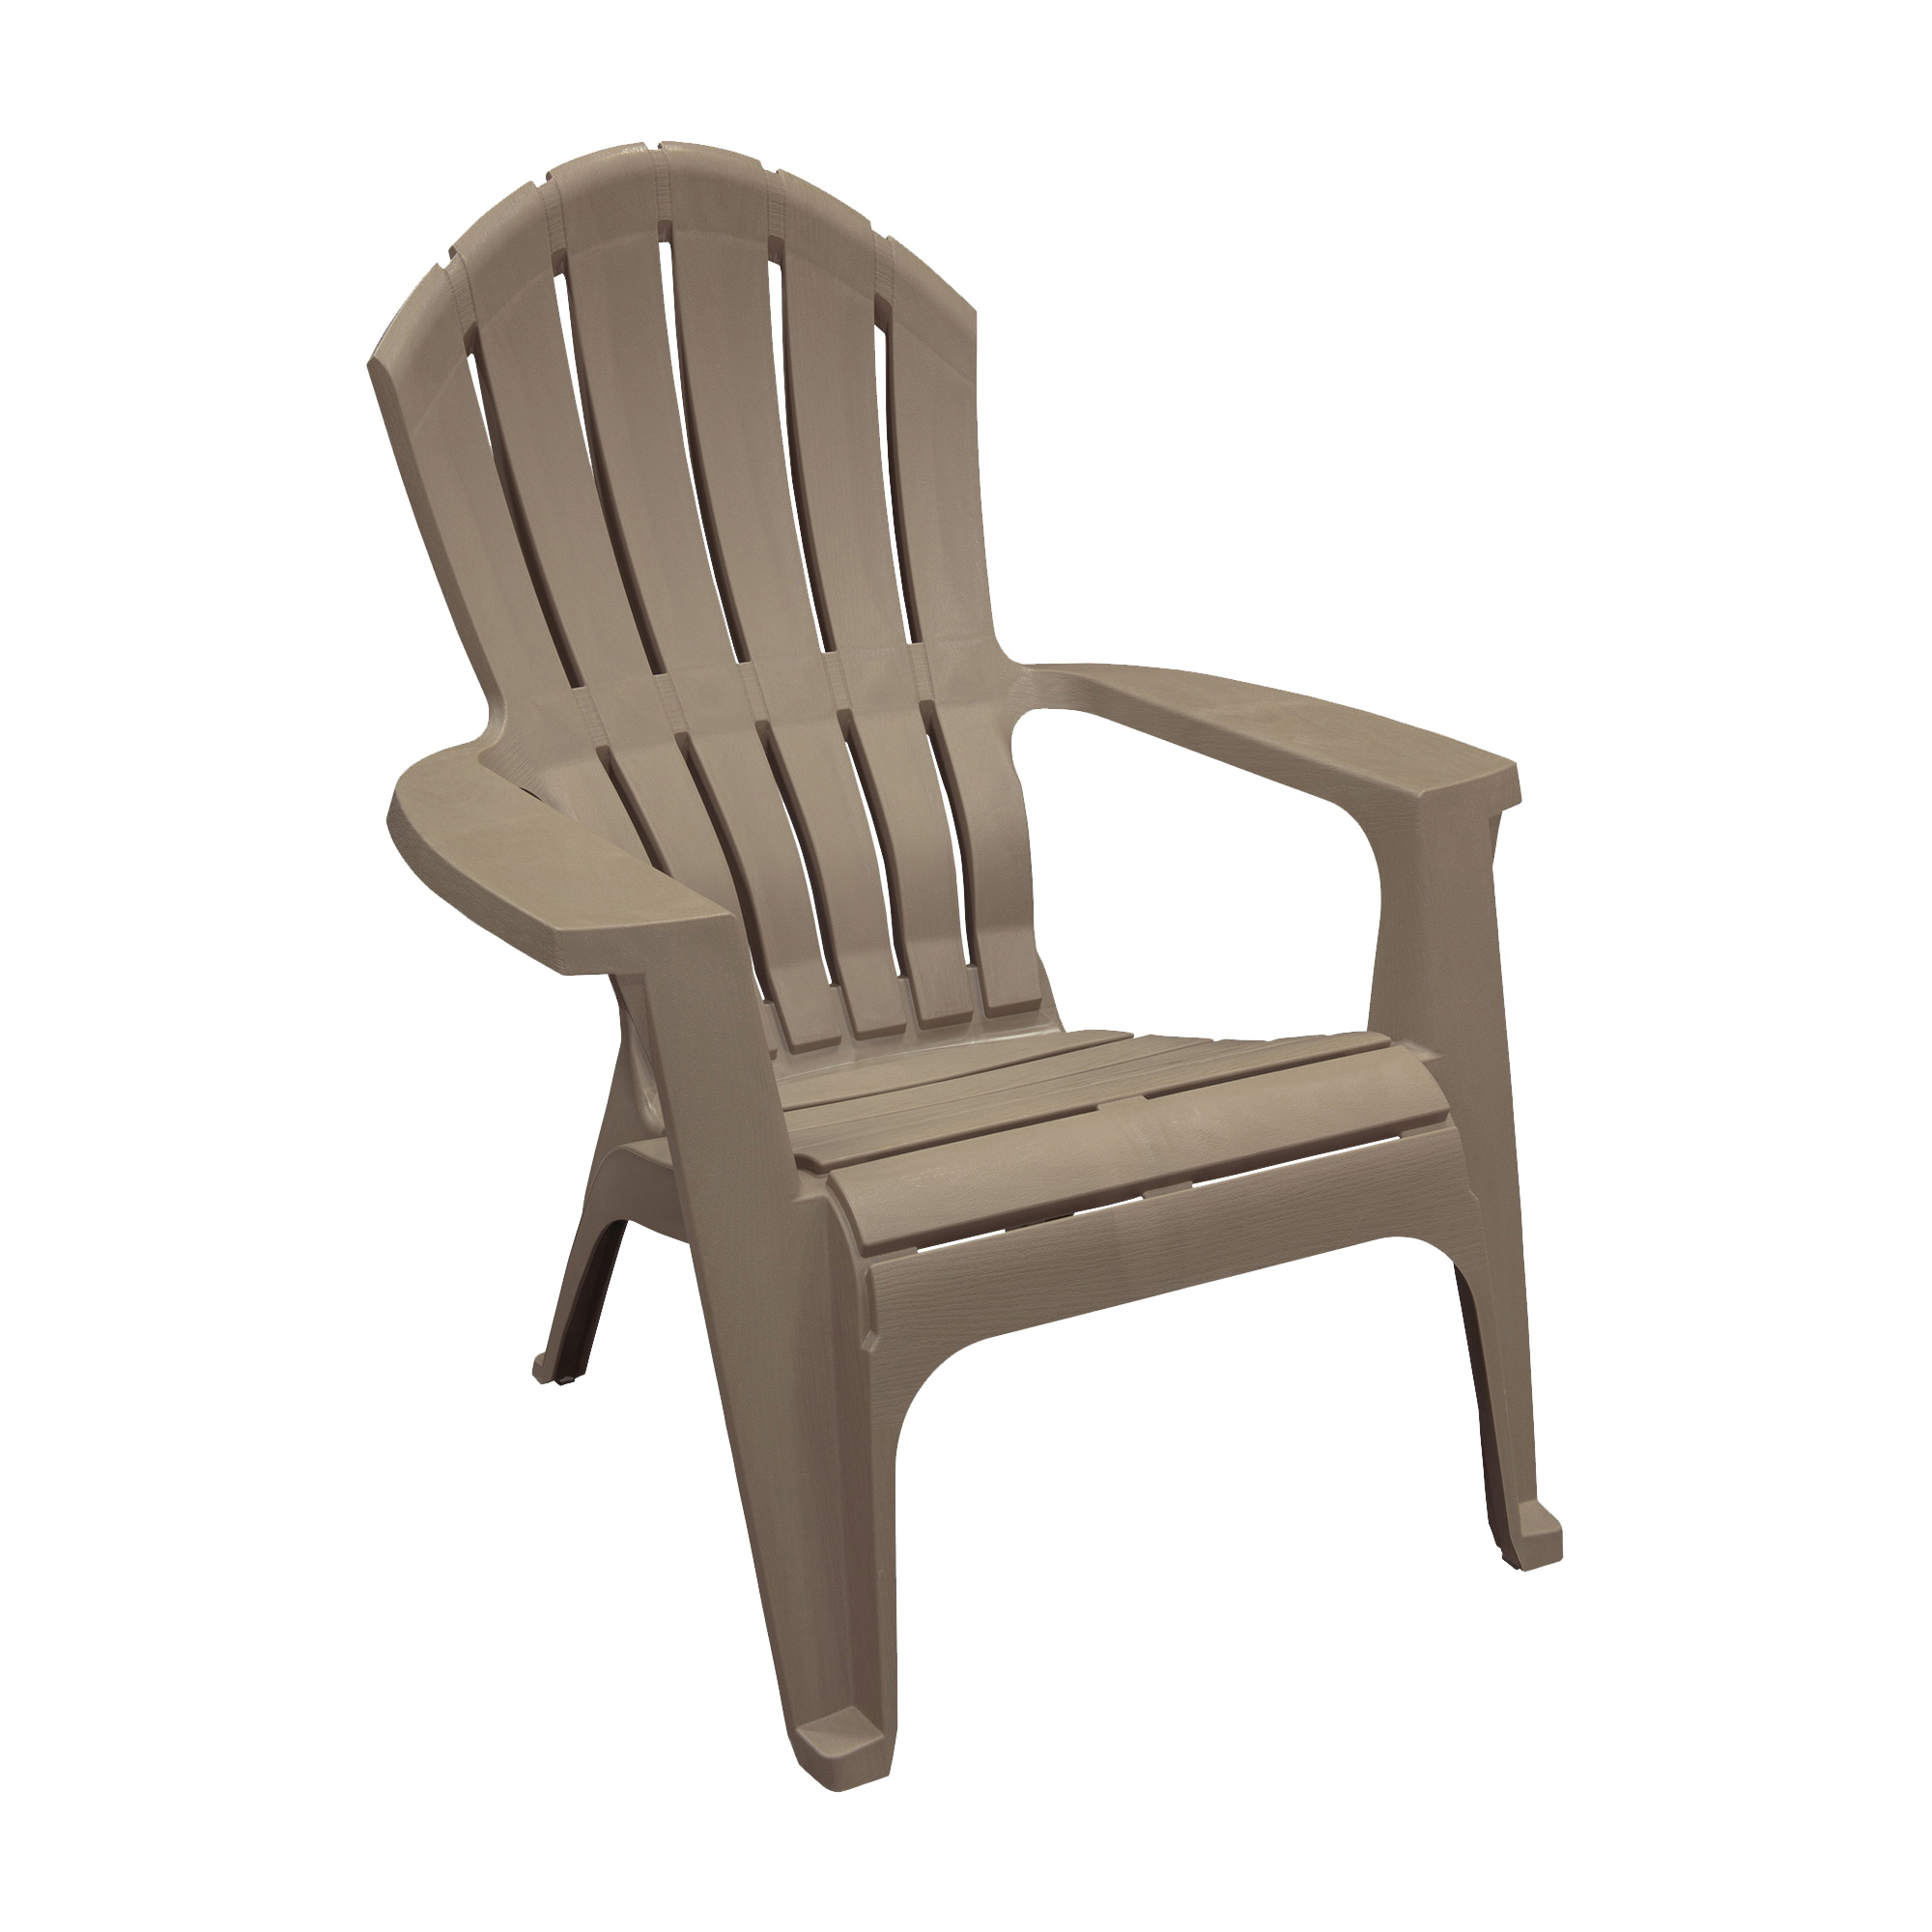 Picture of Adams RealComfort 8371-96-3700 Adirondack Chair, 30 in W, 32-1/2 in D, 37-1/2 in H, Polypropylene Frame